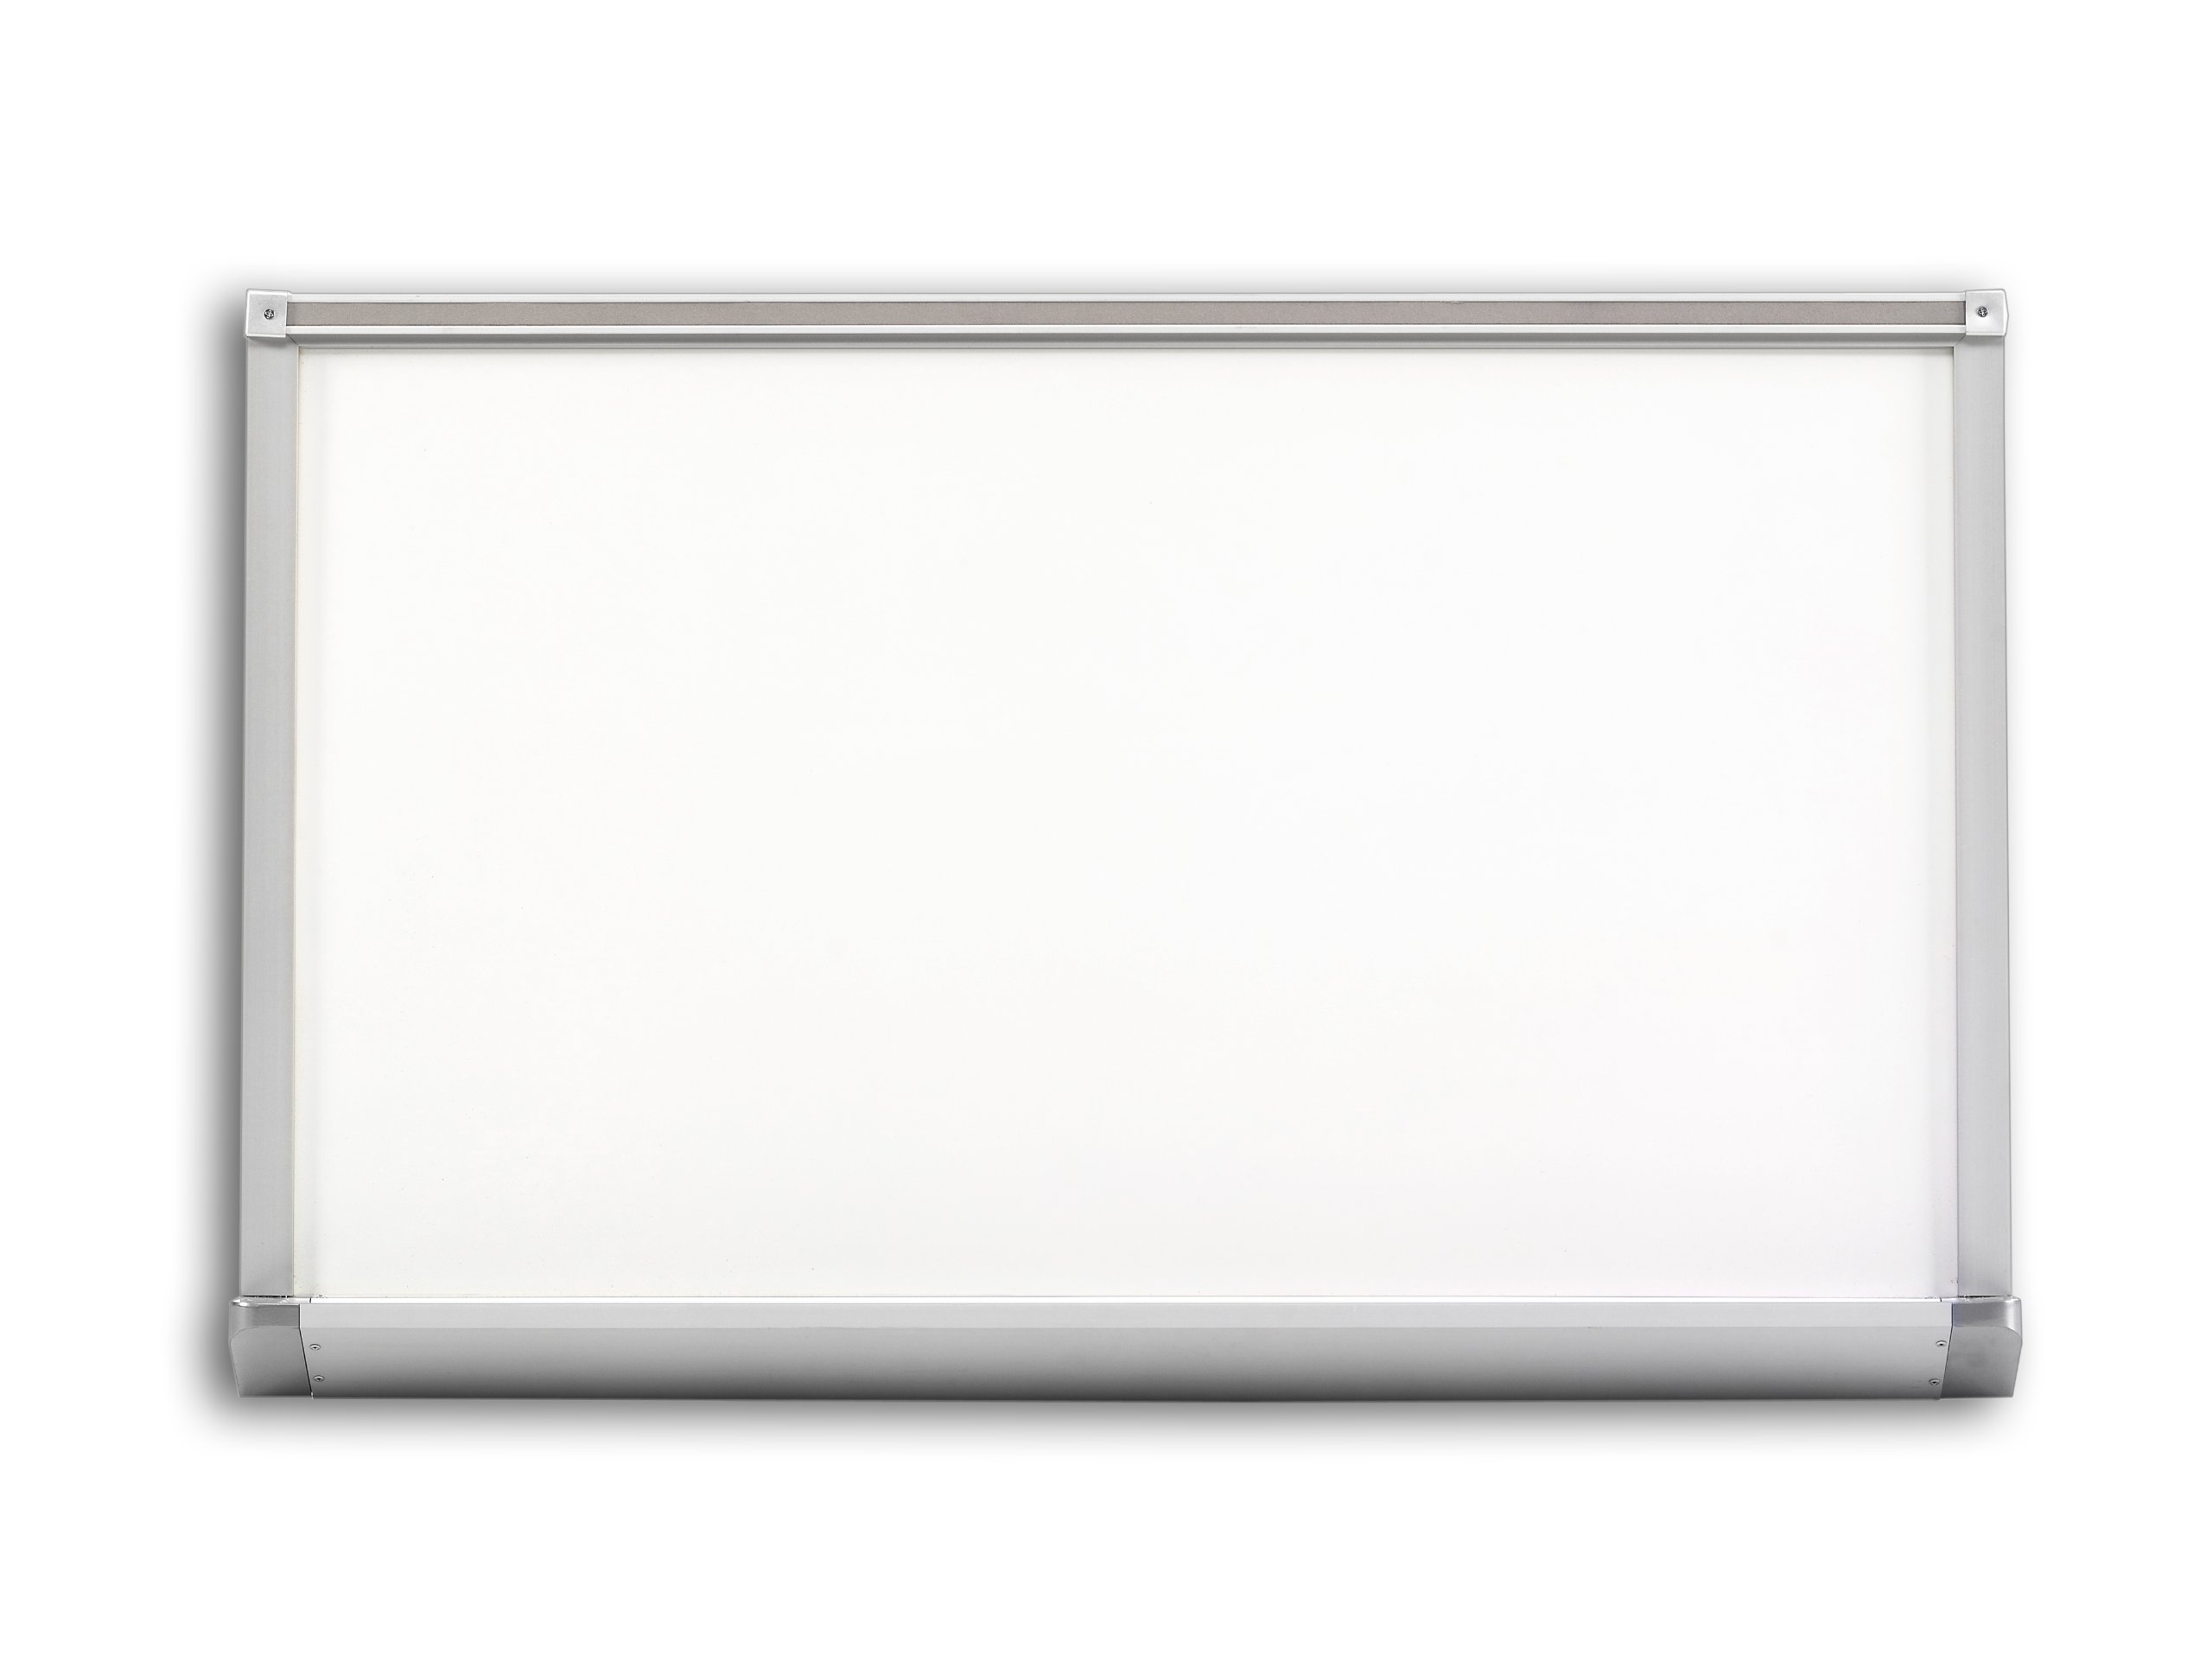 Marsh Industries Pro-Lite Markerboard, White, 120 x 48